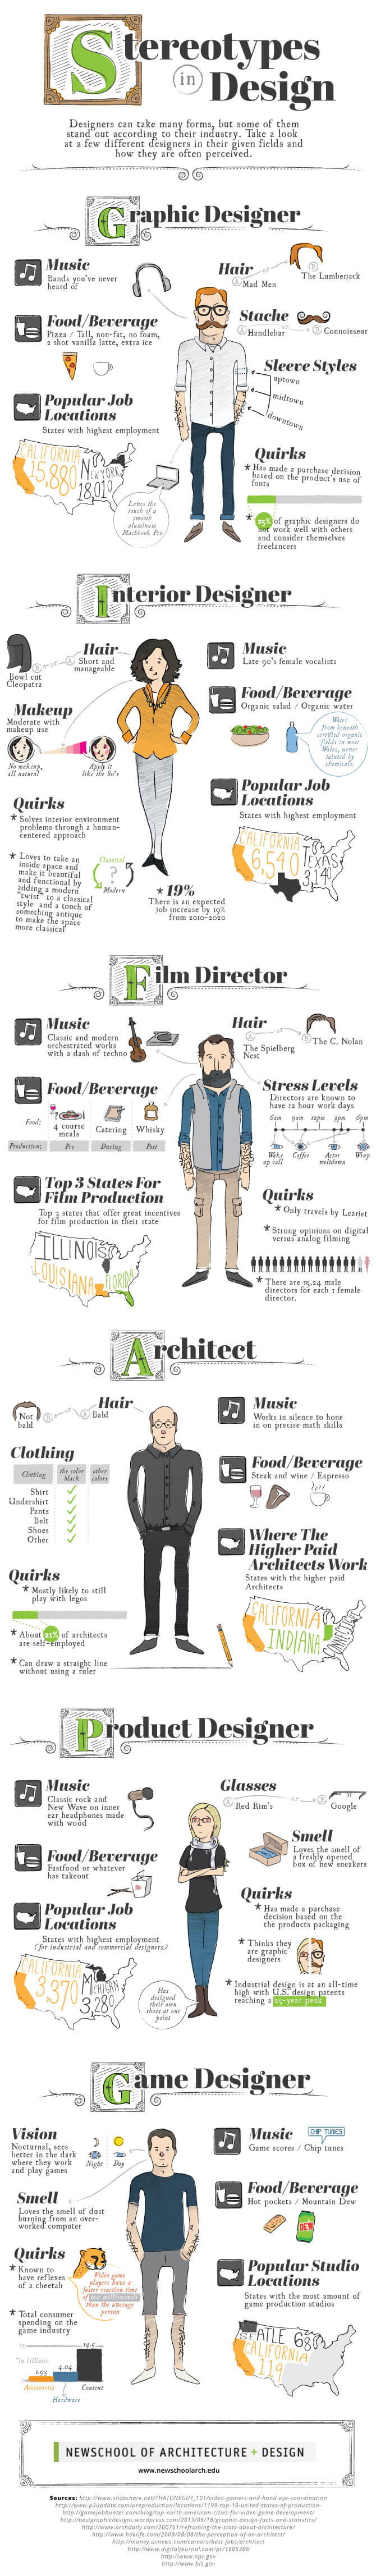 Infographic: Stereotypes in design